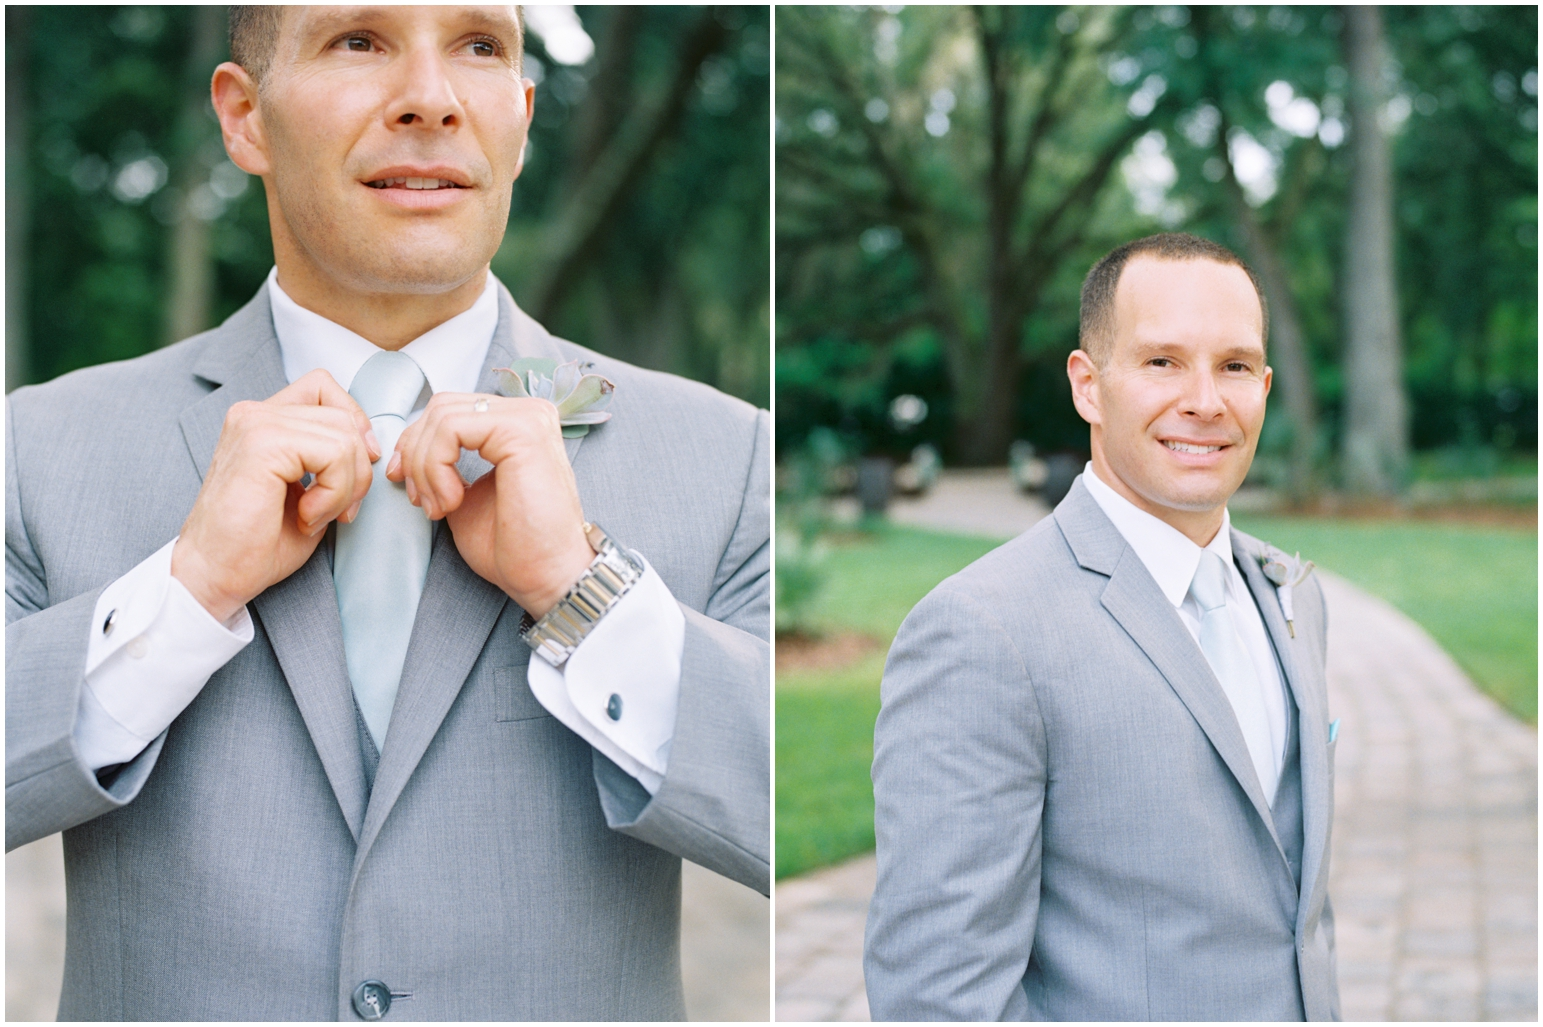 Lisa Silva Photography- Jacksonville, St Augustine, Fernandina Beach, Amelia Island, Ponte Vedra Beach, North East Florida Fine Art Film Photographer- Ashley and Shawn's wedding at bowing oaks plantation_0045.jpg